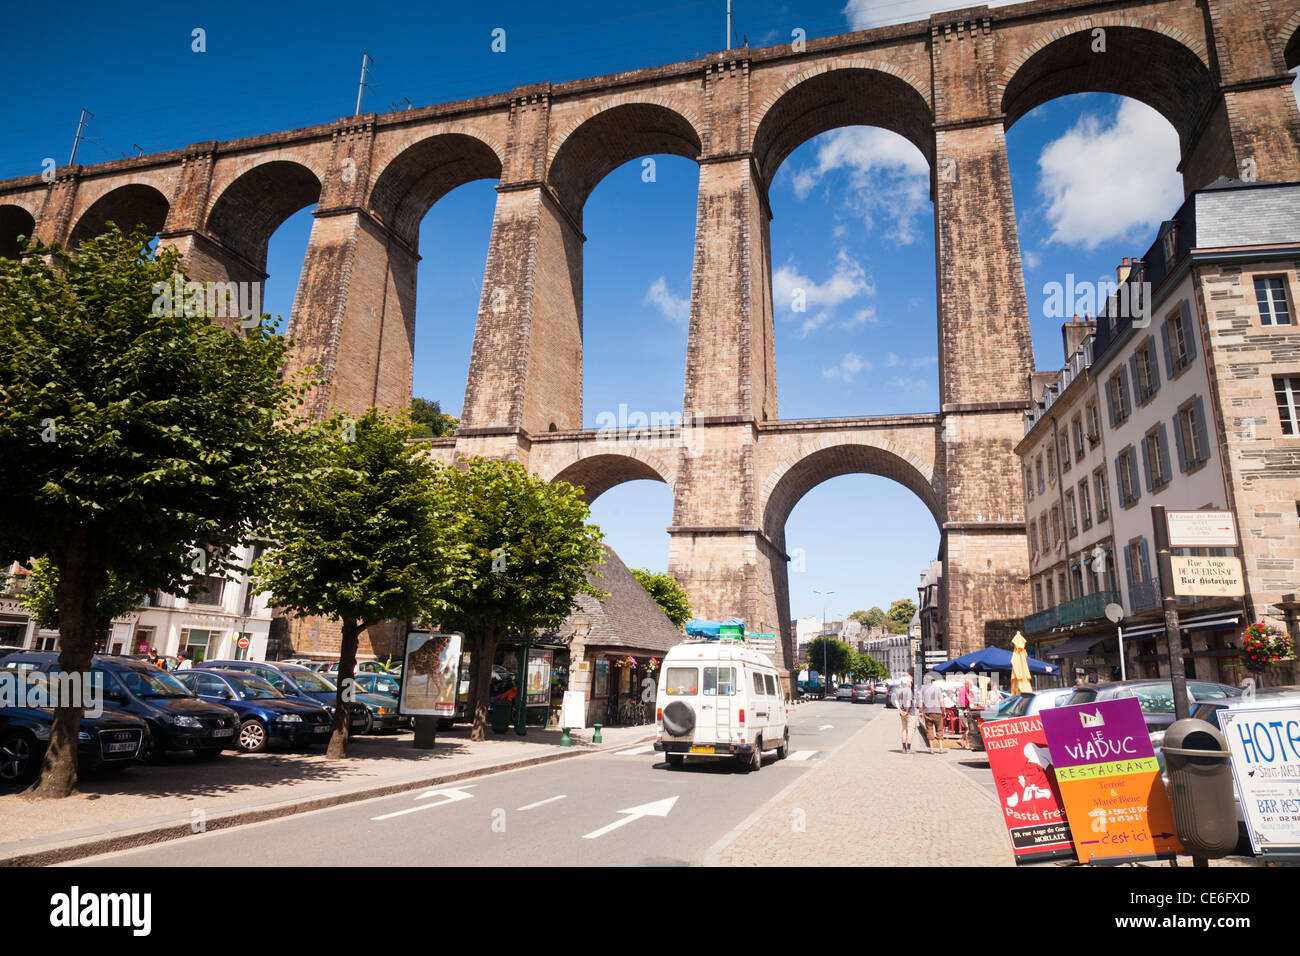 The viaduct at Morlaix, Finistere, Brittany, France. - Stock Image